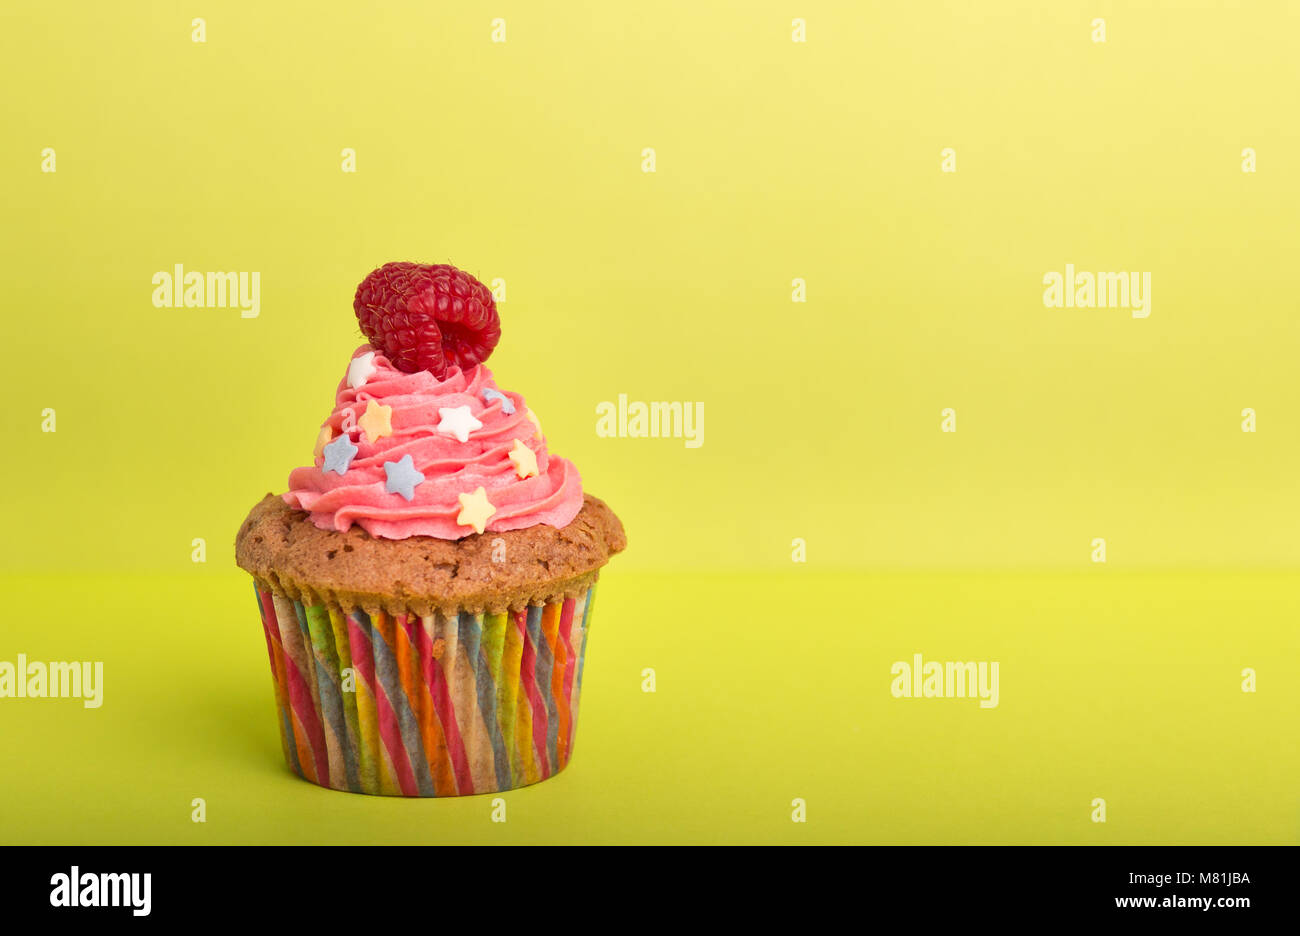 Home Baked Cupcakes With Colorful Frosting And Fruit On A Yellow Background